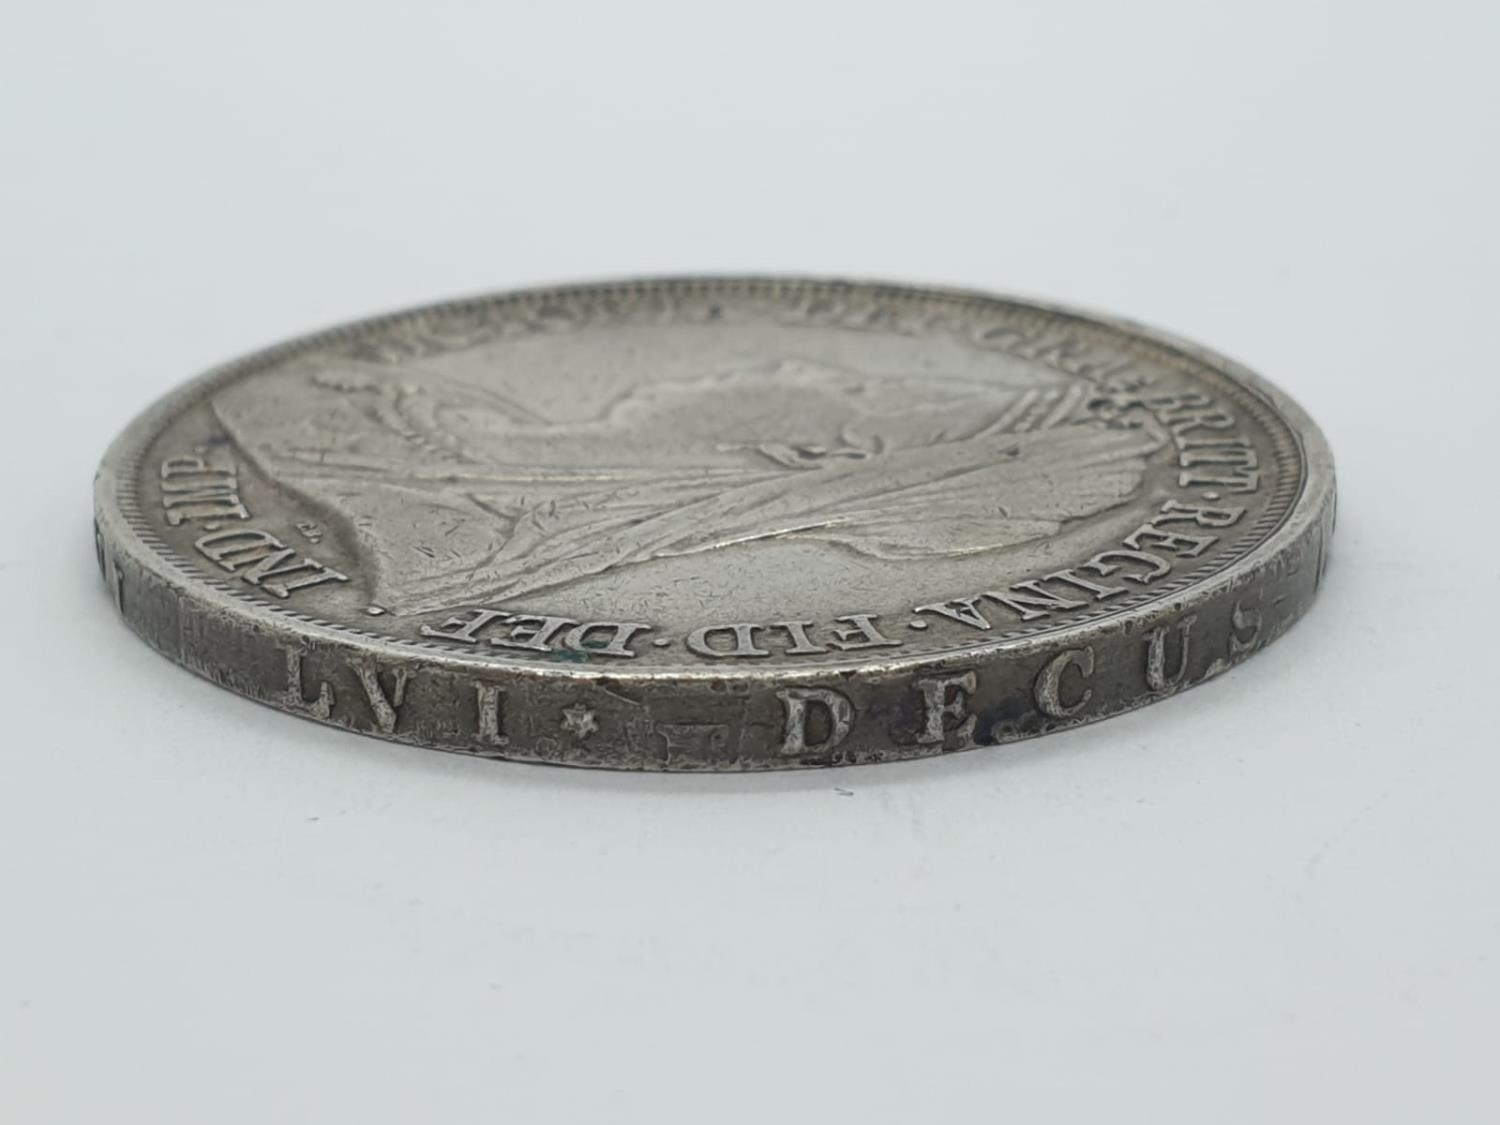 1893 Victorian silver crown - Image 3 of 5